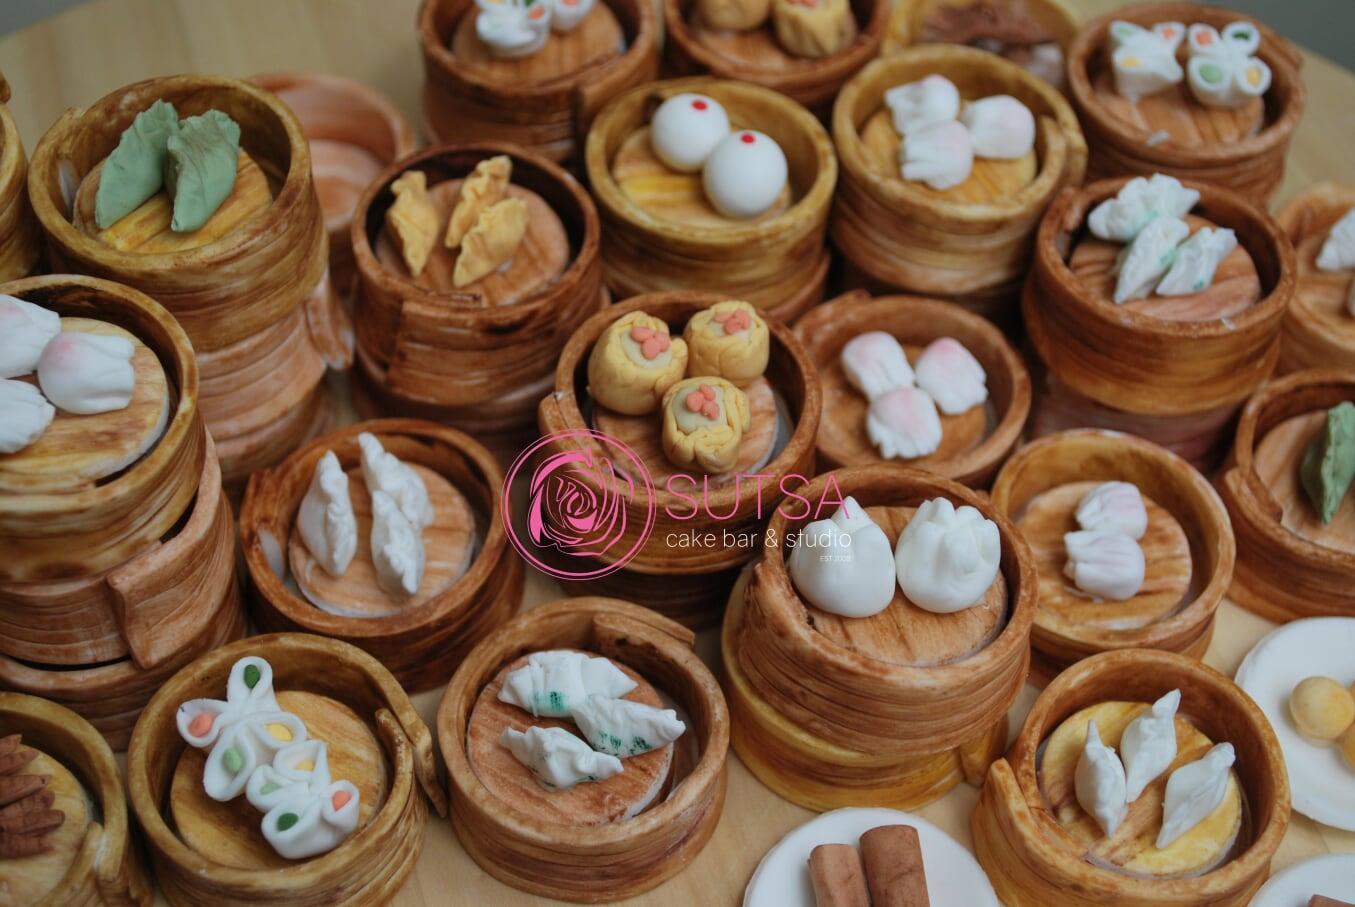 Cake Decorating Workshop Miniature Yum Cha Figurines